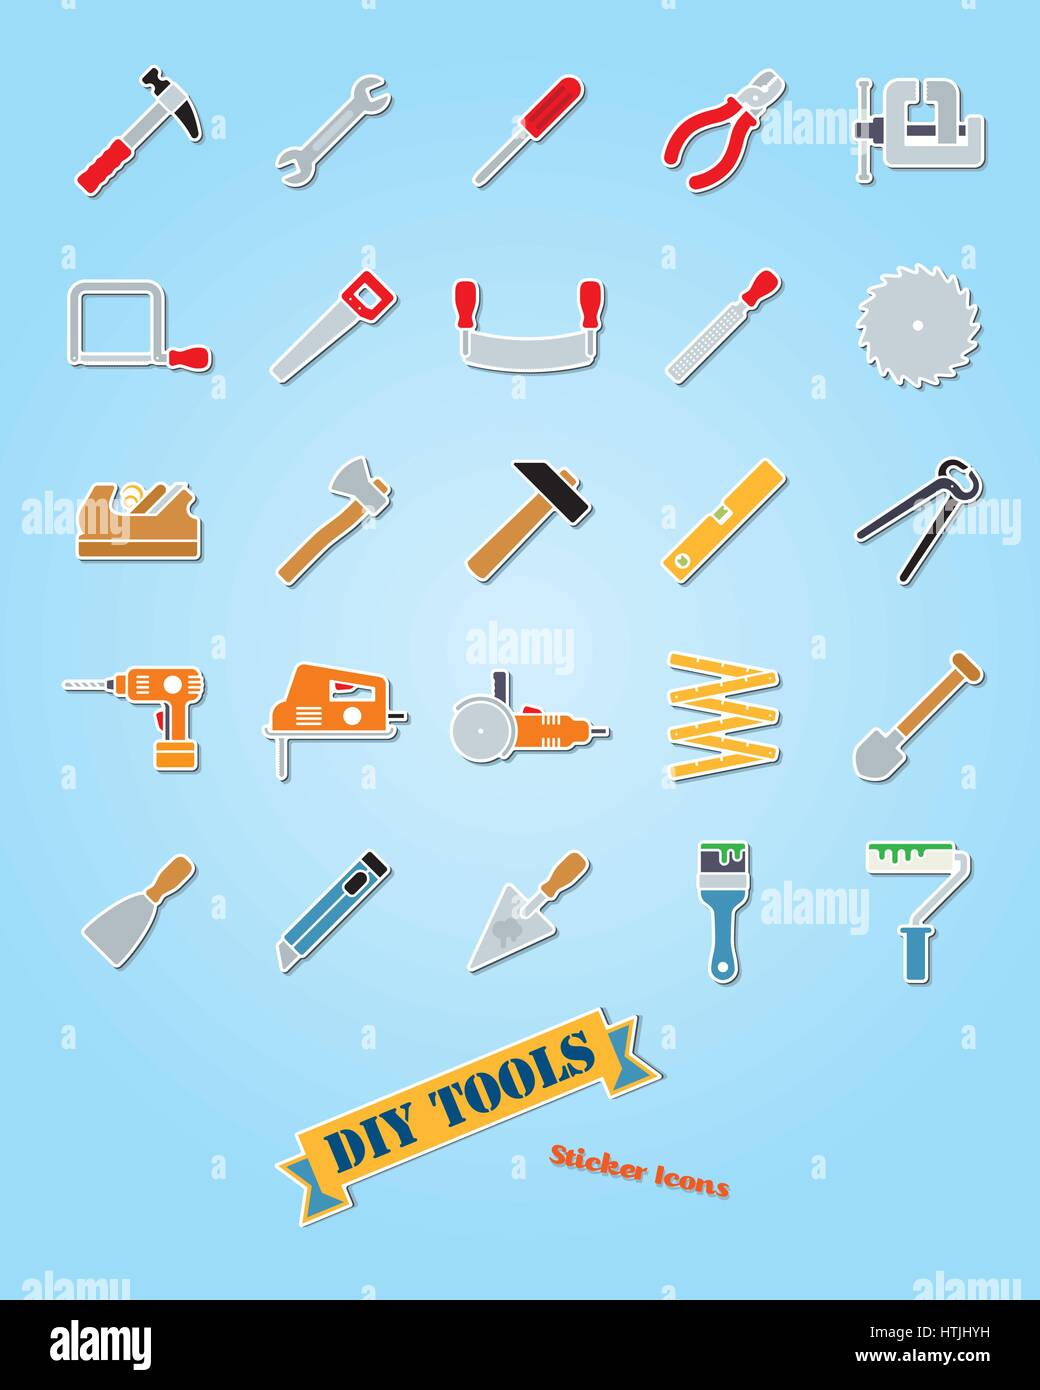 Collection of 25 do it yourself tools sticker icons - Stock Vector